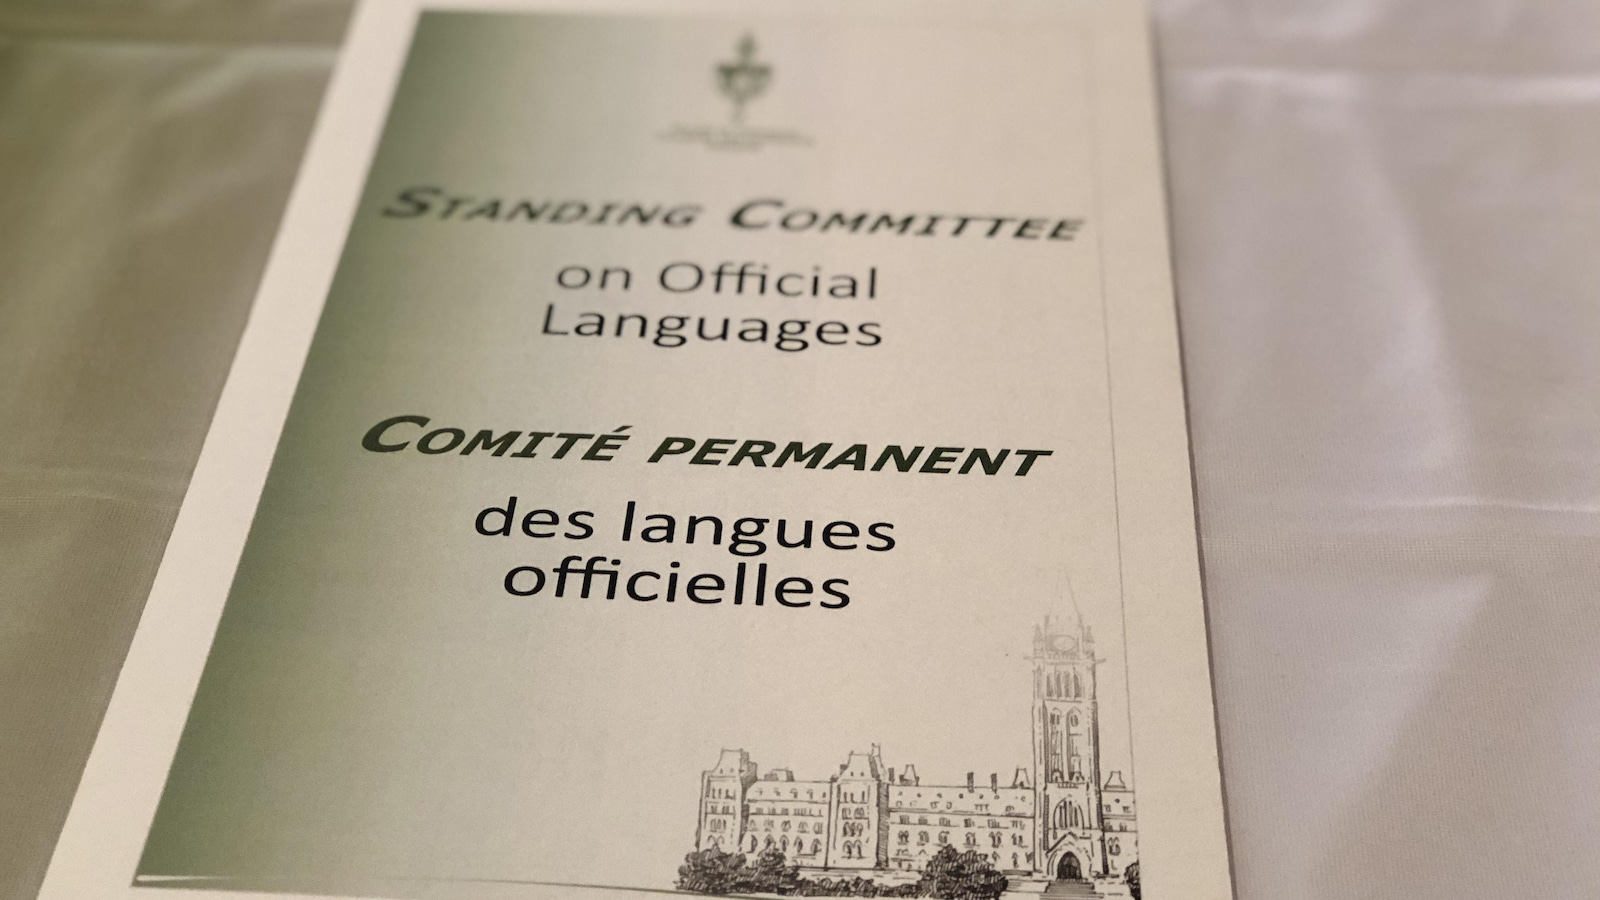 Gros plan sur un document portant le titre Comité permanent des langues officielles et Standing Committee on official languages.